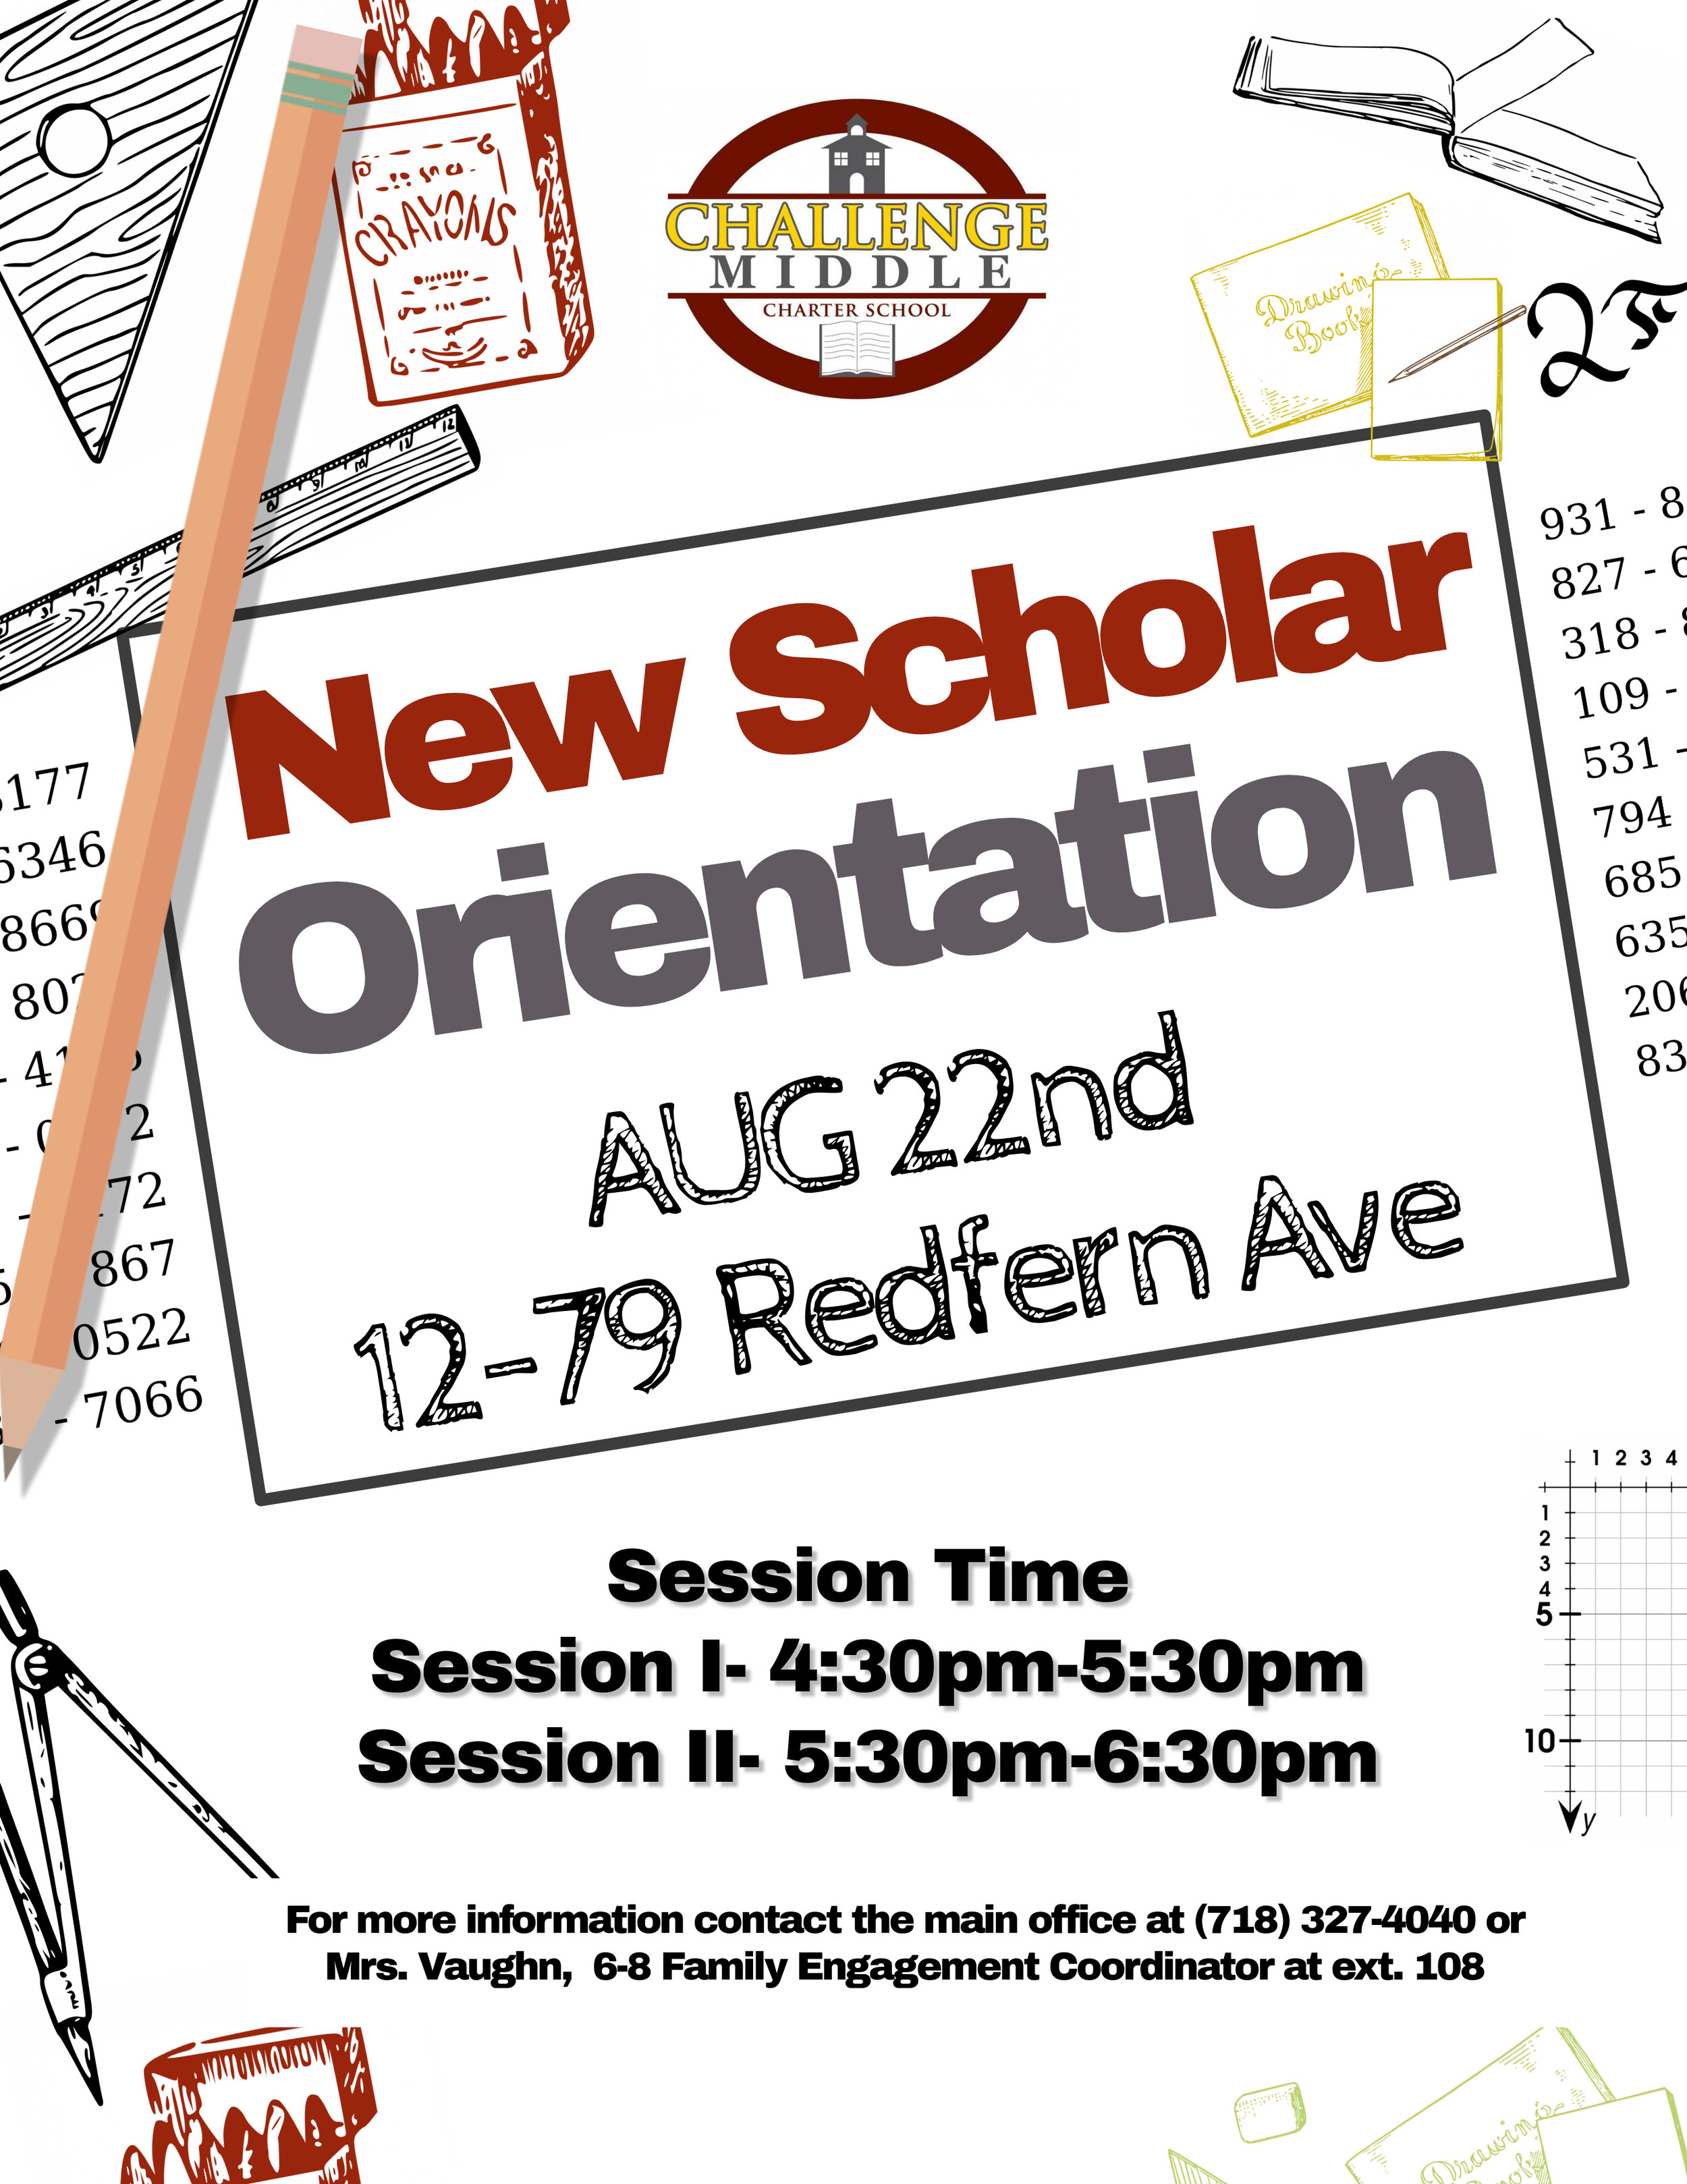 New Scholar Orientation flyer